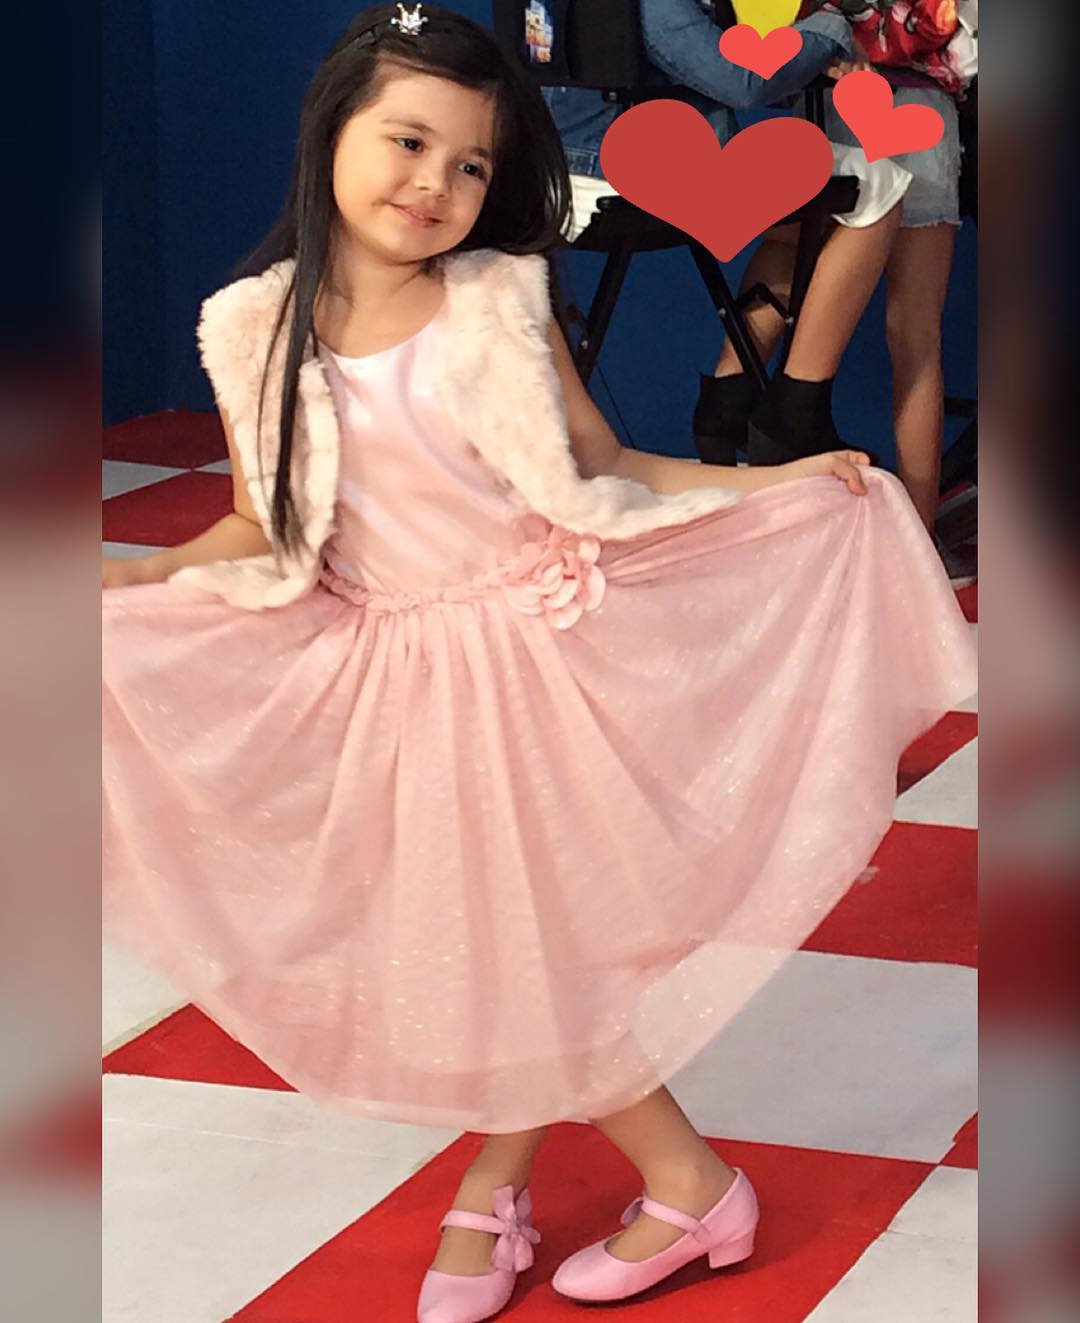 50 overly adorable photos of xia that prove she's the next childstar to watch out for